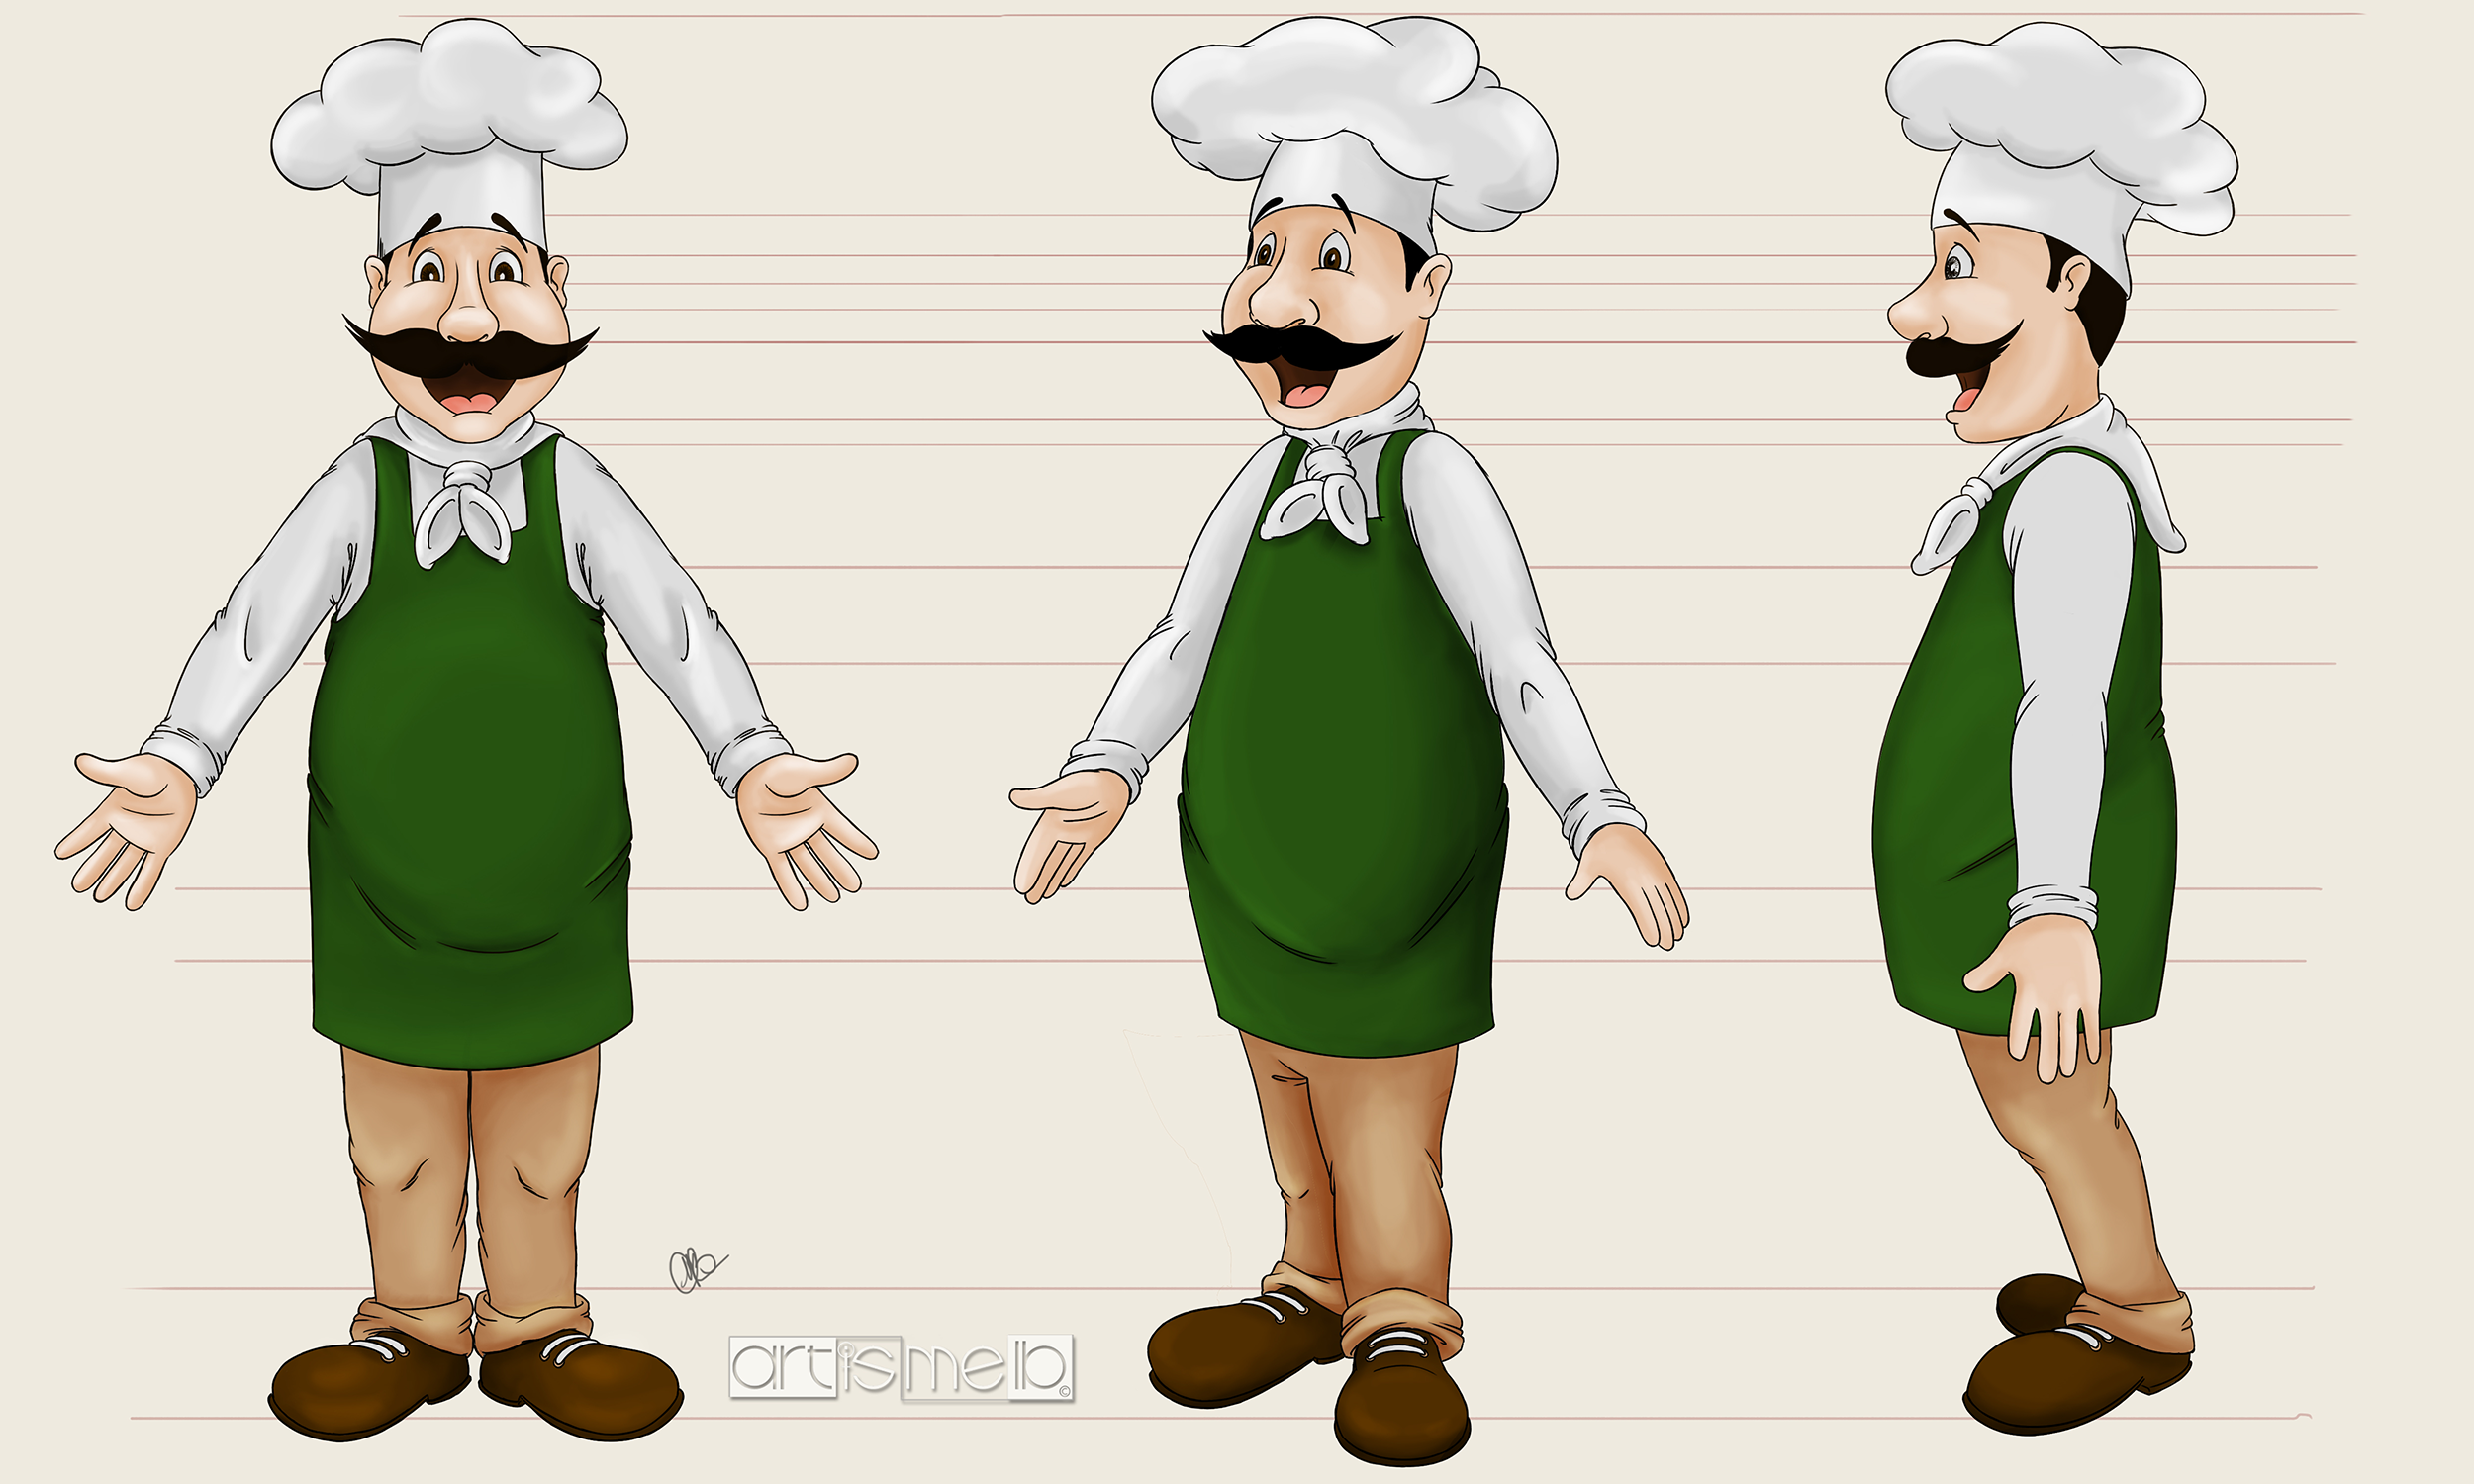 Turnaround chef